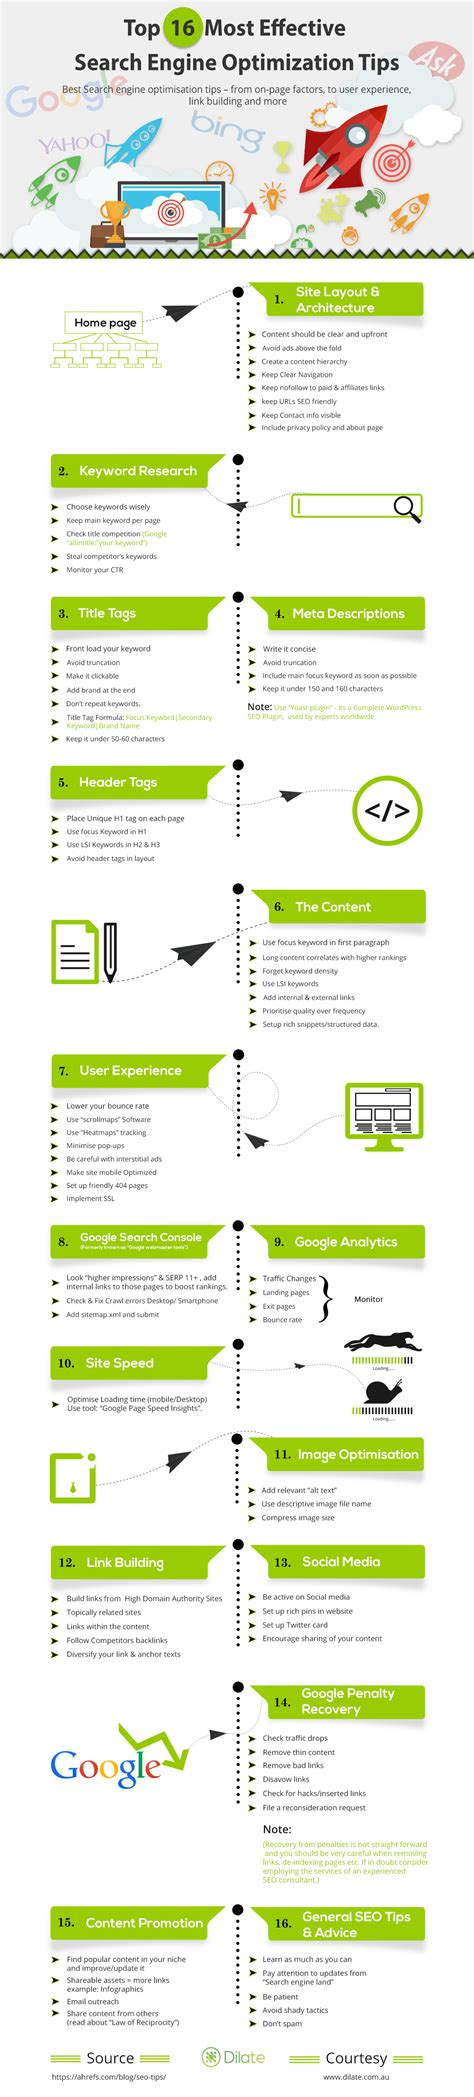 search engine optimisation strategies top 16 search engine optimization tips infographic